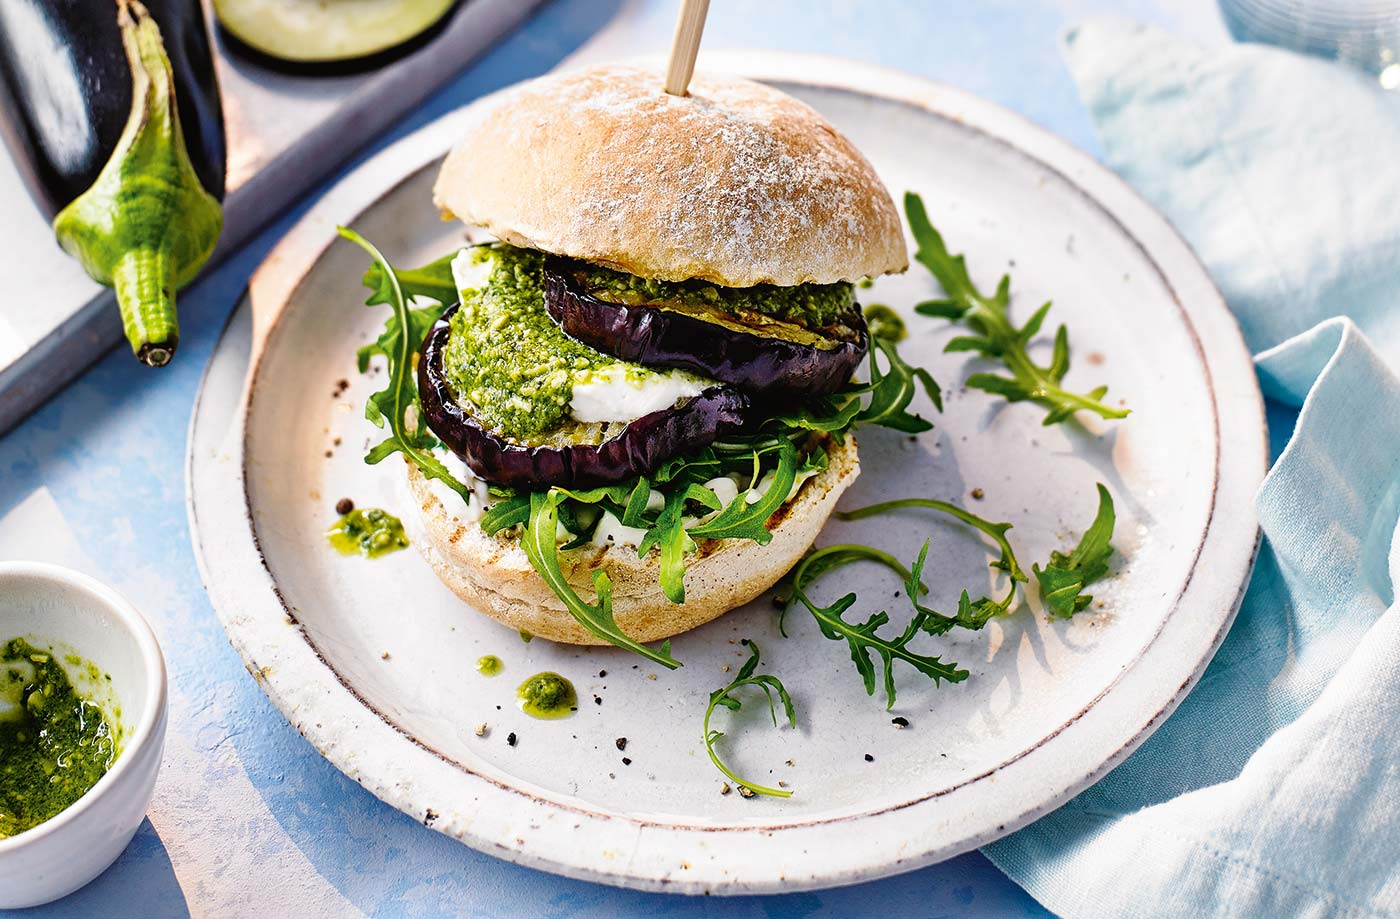 Aubergine, pesto and goat's cheese burgers